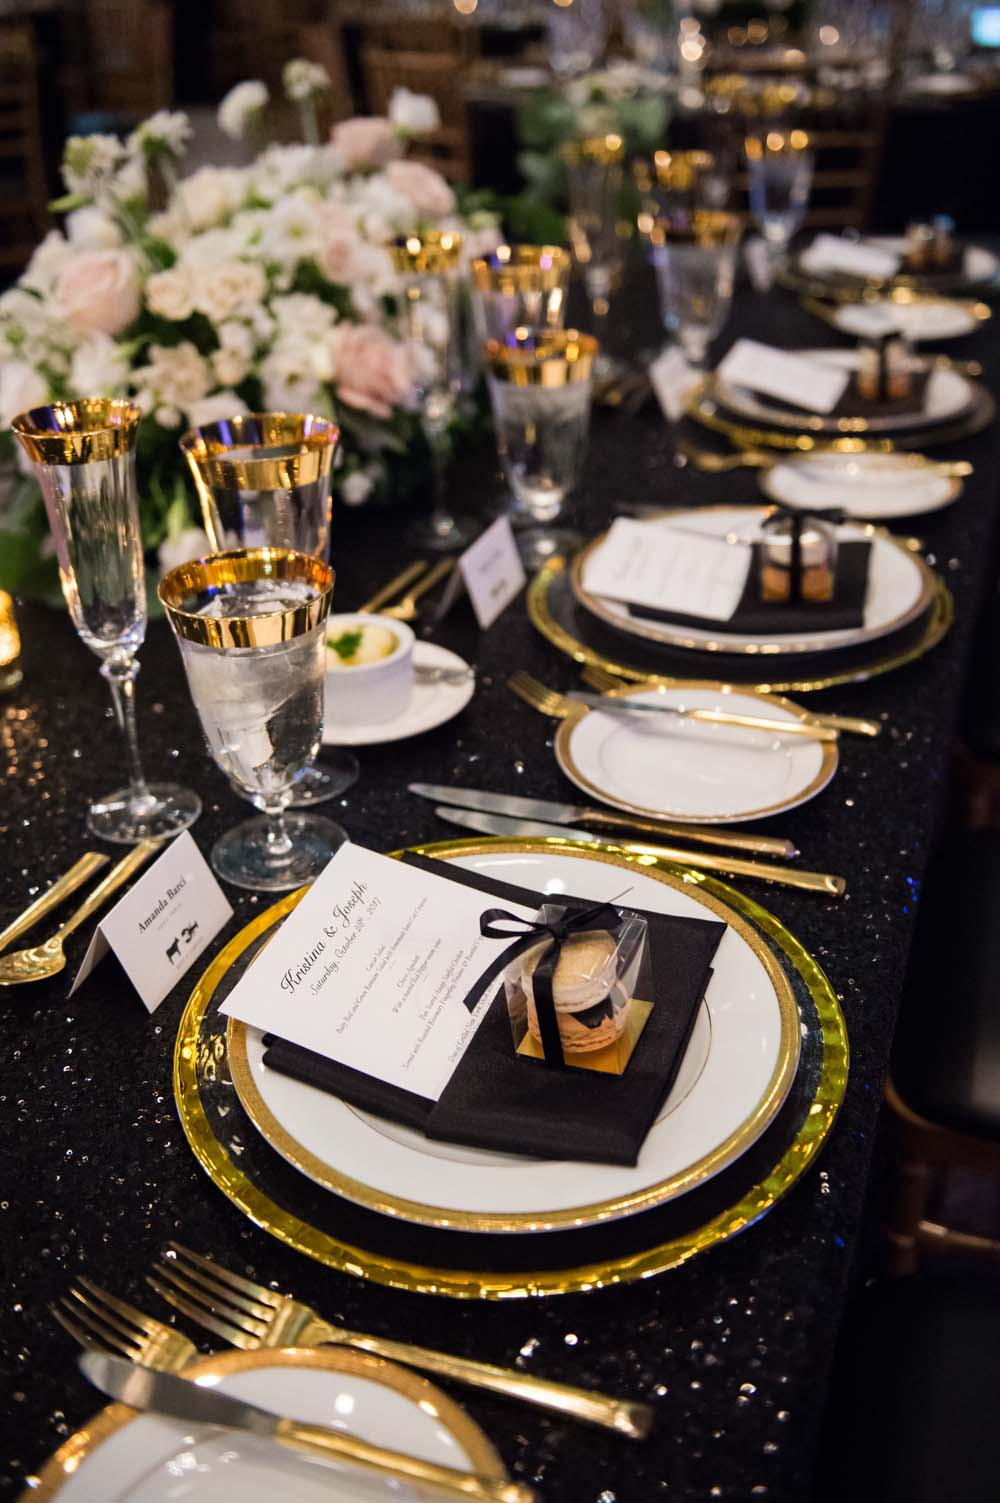 A Classic Vintage inspired Wedding at the One King West in Toronto - Place Settings